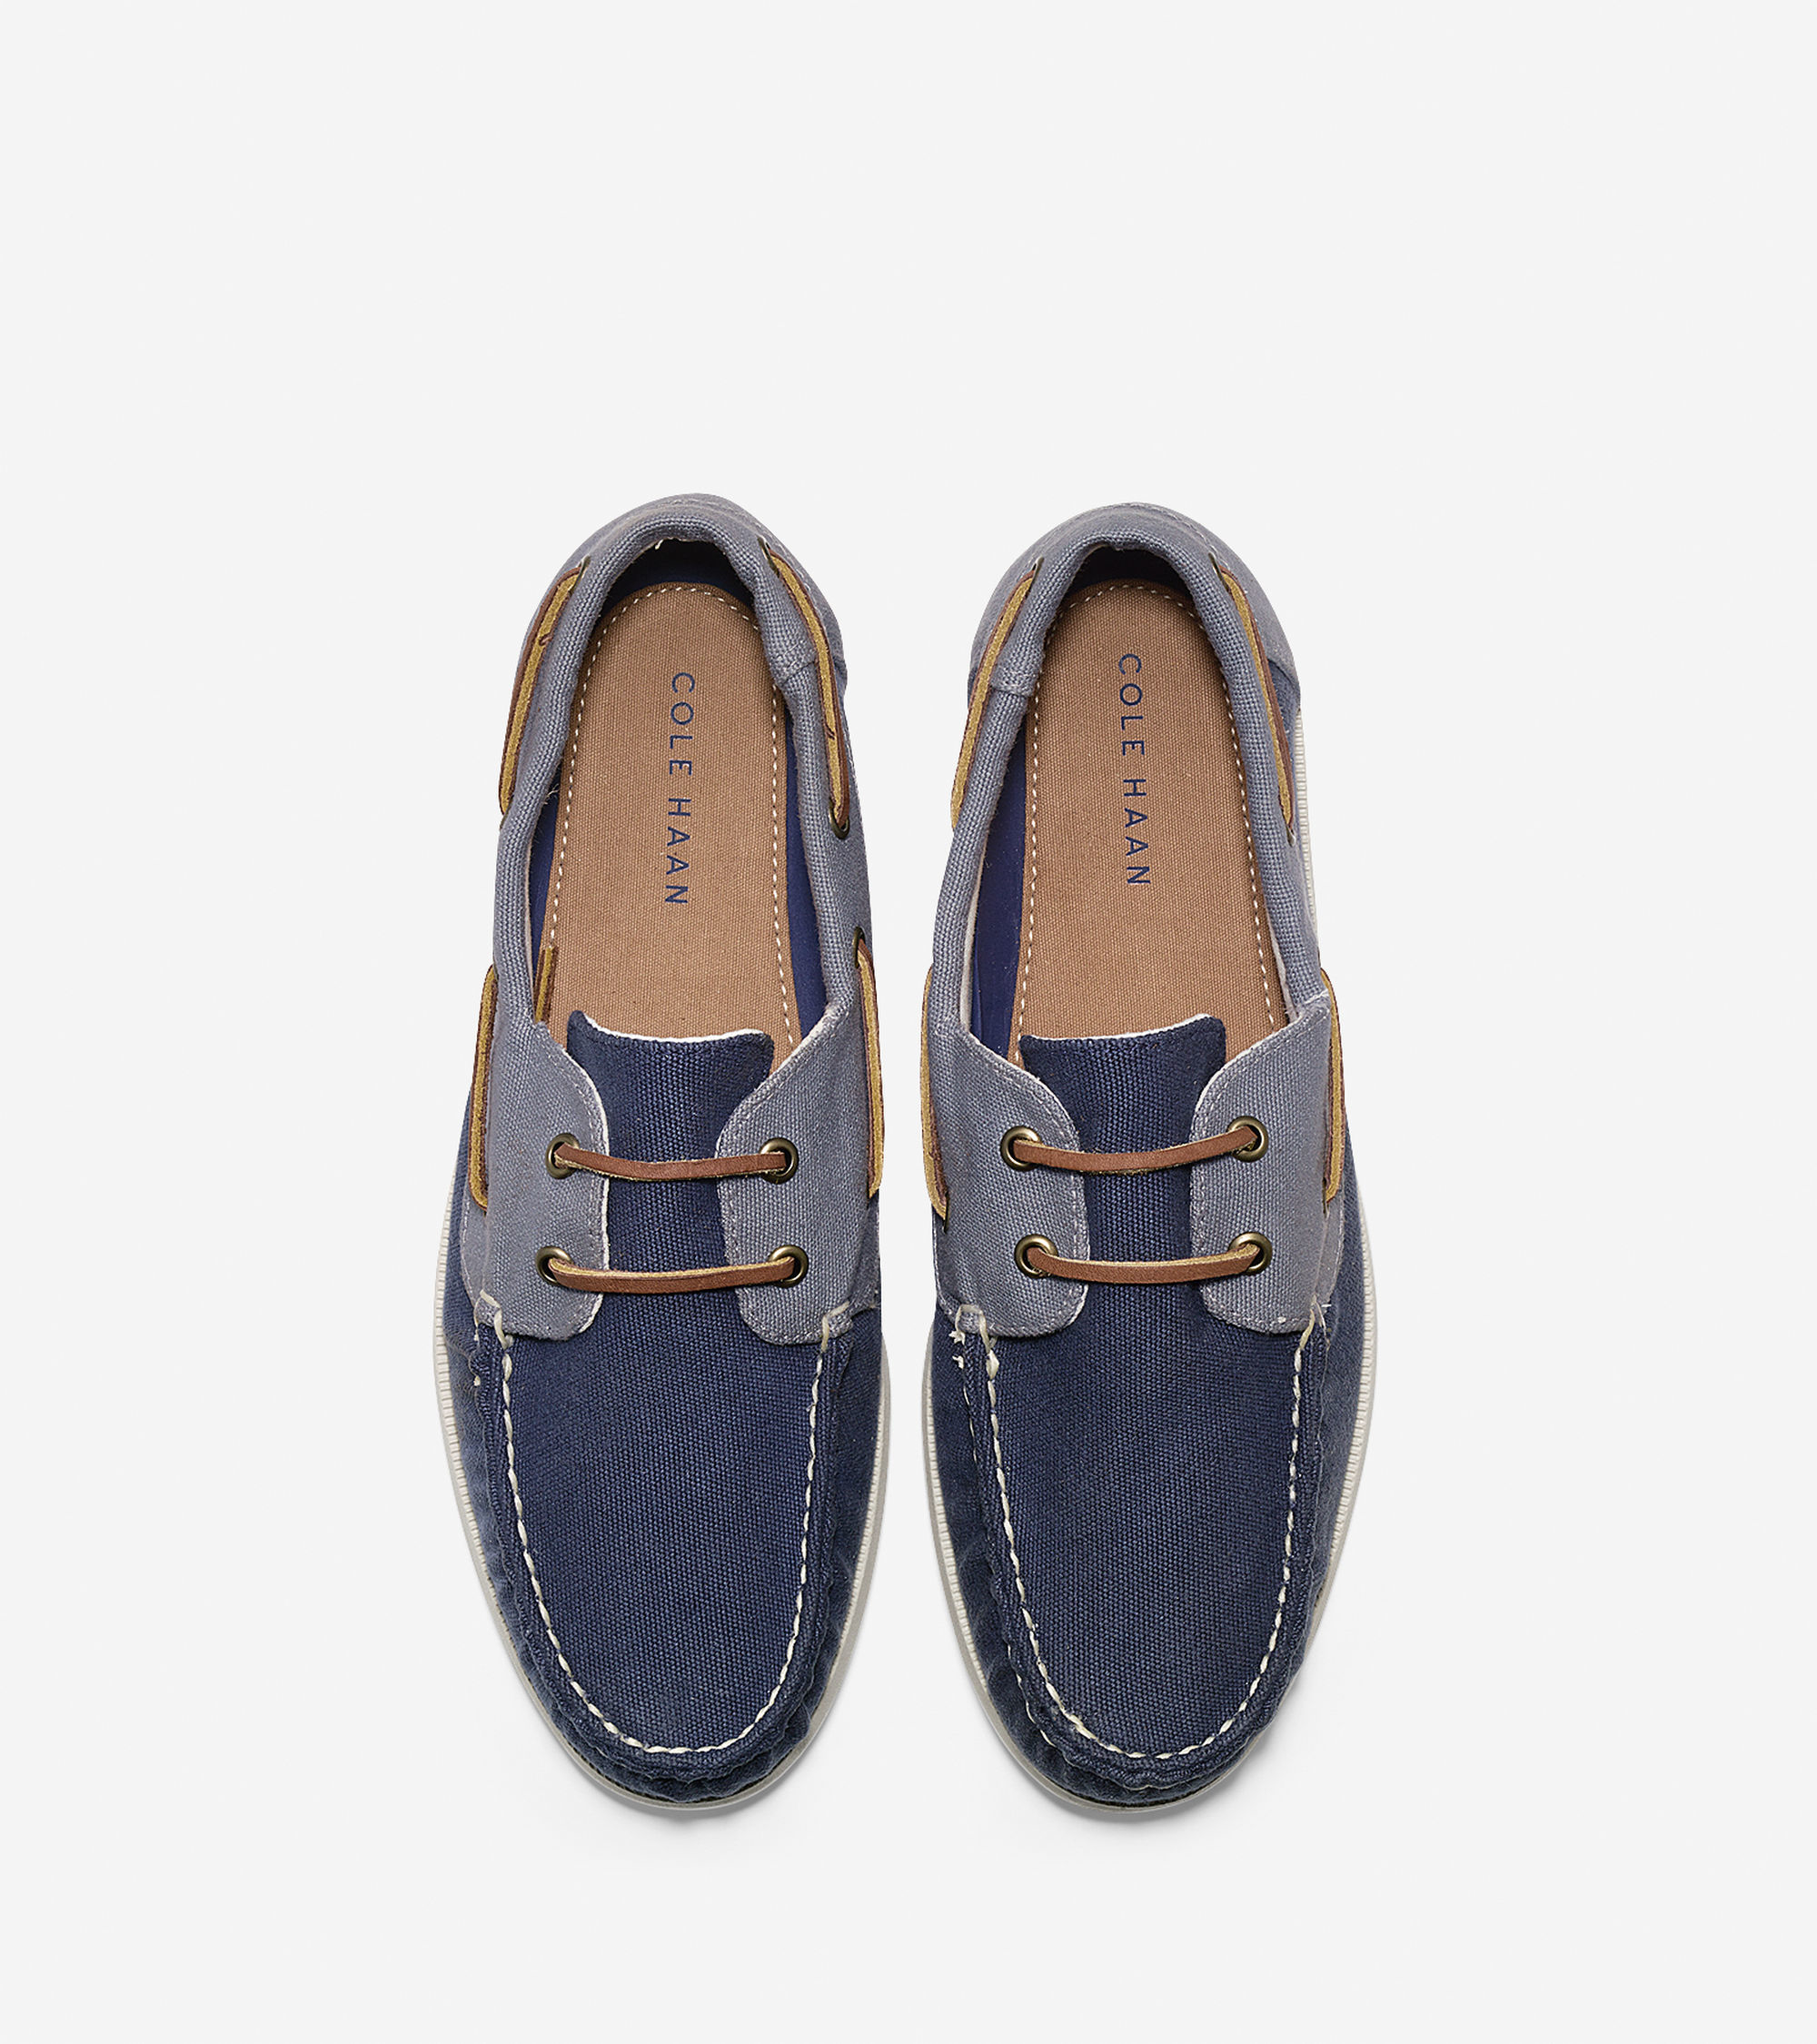 Cole Haan Dominick Boat Shoe In Blue For Men Lyst